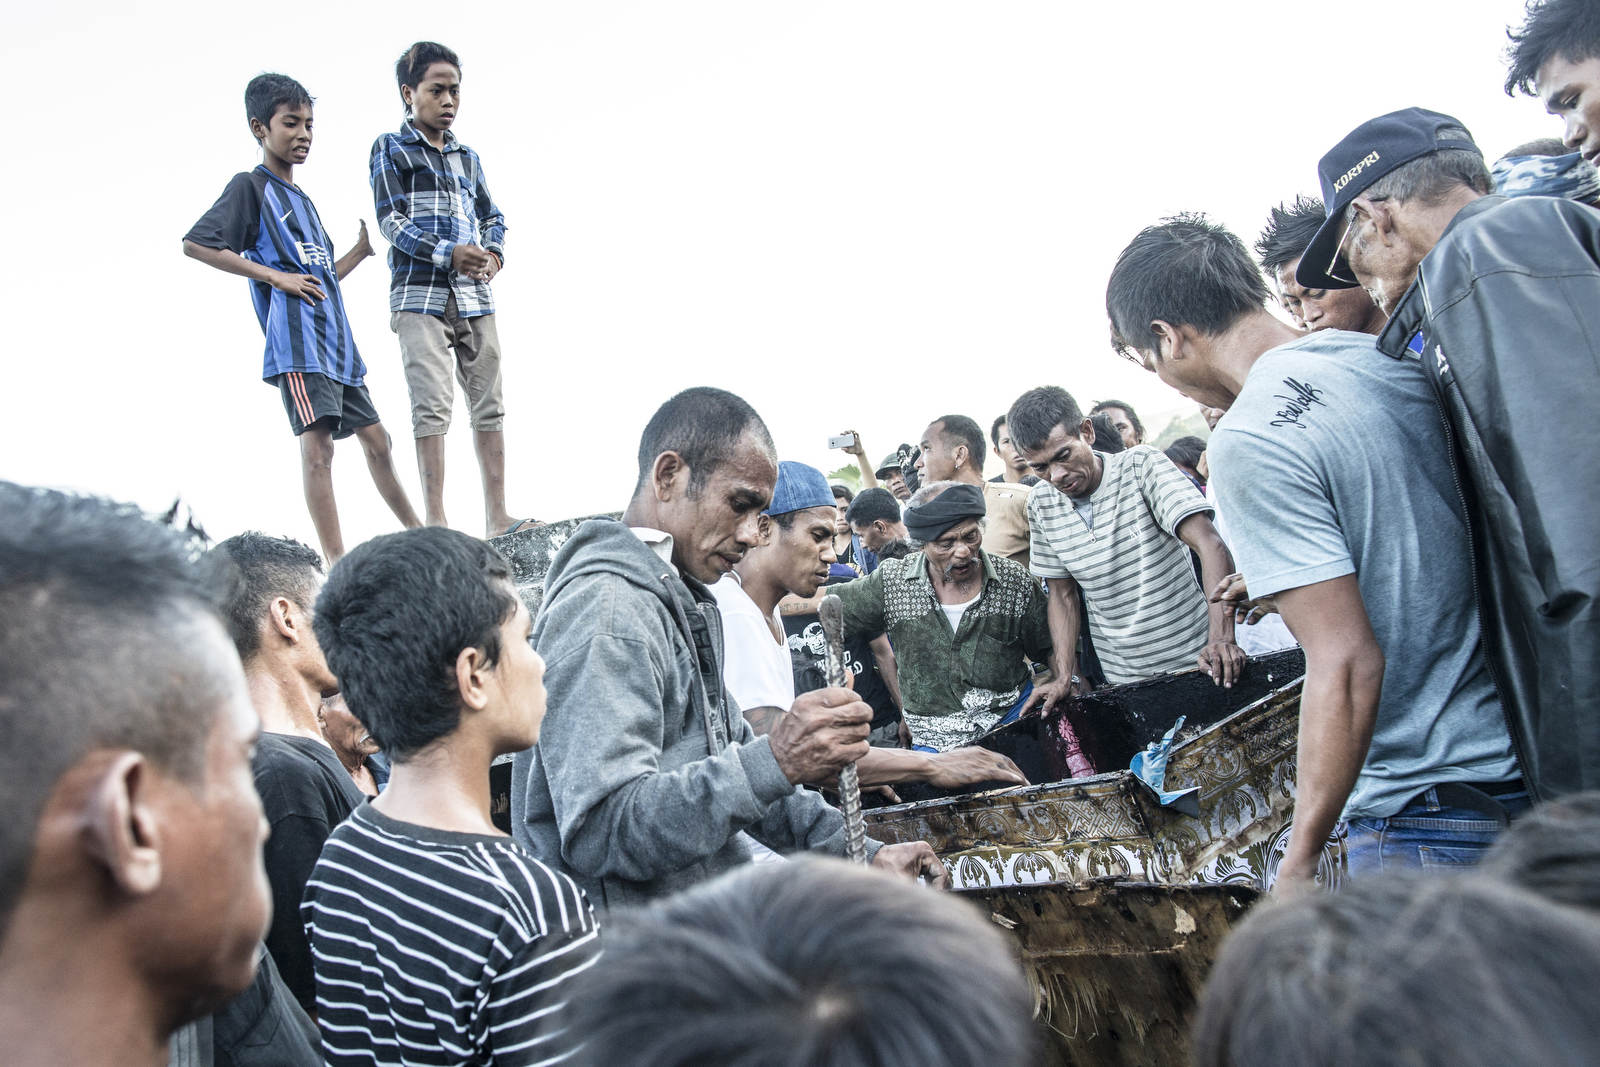 Young boys look on as the box in which the deceased is opened. After more than a year of sitting in the living room, the body has decayed beyond recognition. The practice of keeping the body in the house allows for a slow and less painful goodbye.